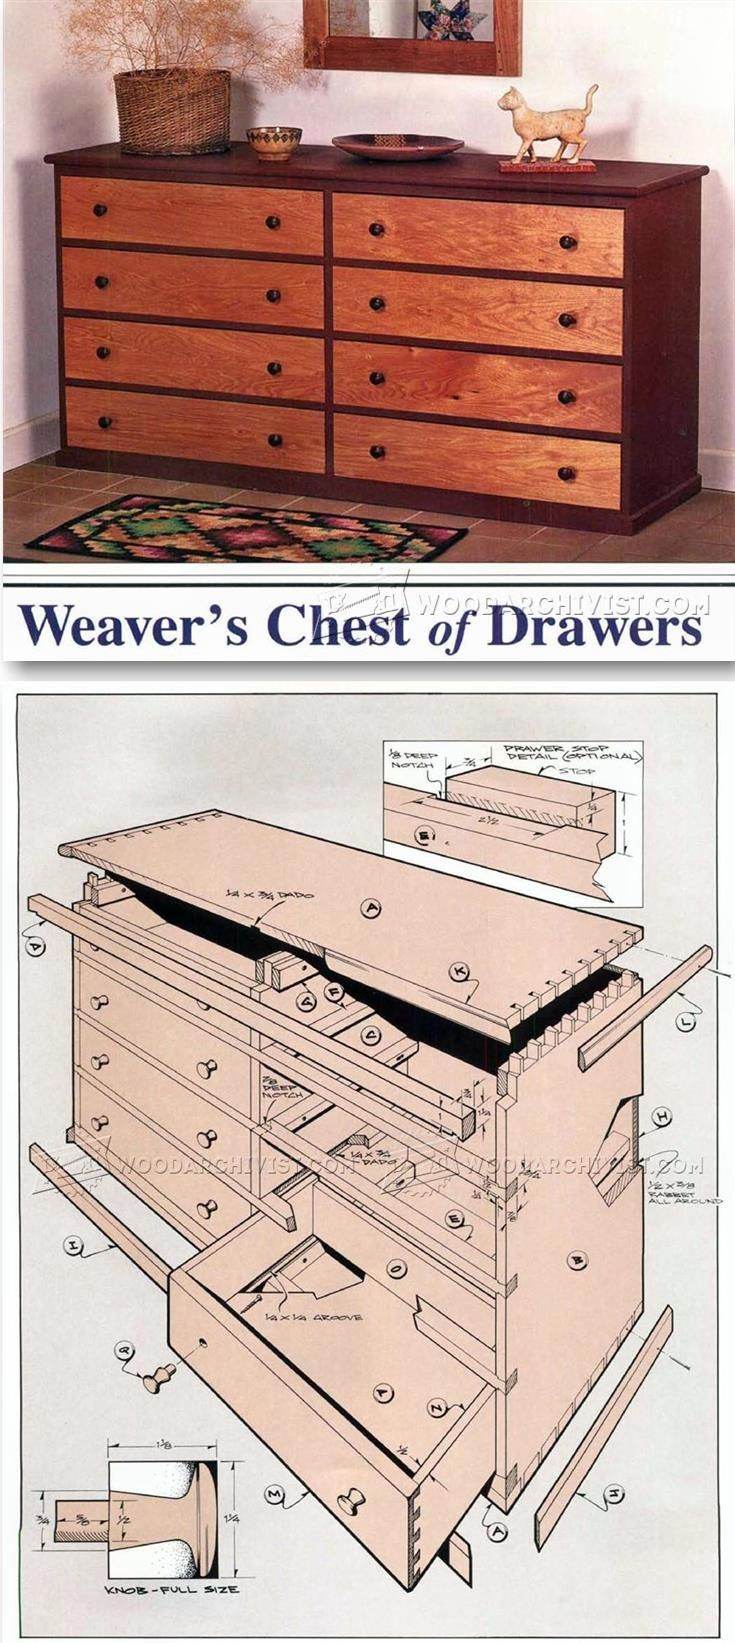 Weavers Chest of Drawers Plans - Furniture Plans and Projects | WoodArchivist.com                                                                                                                                                                                 More